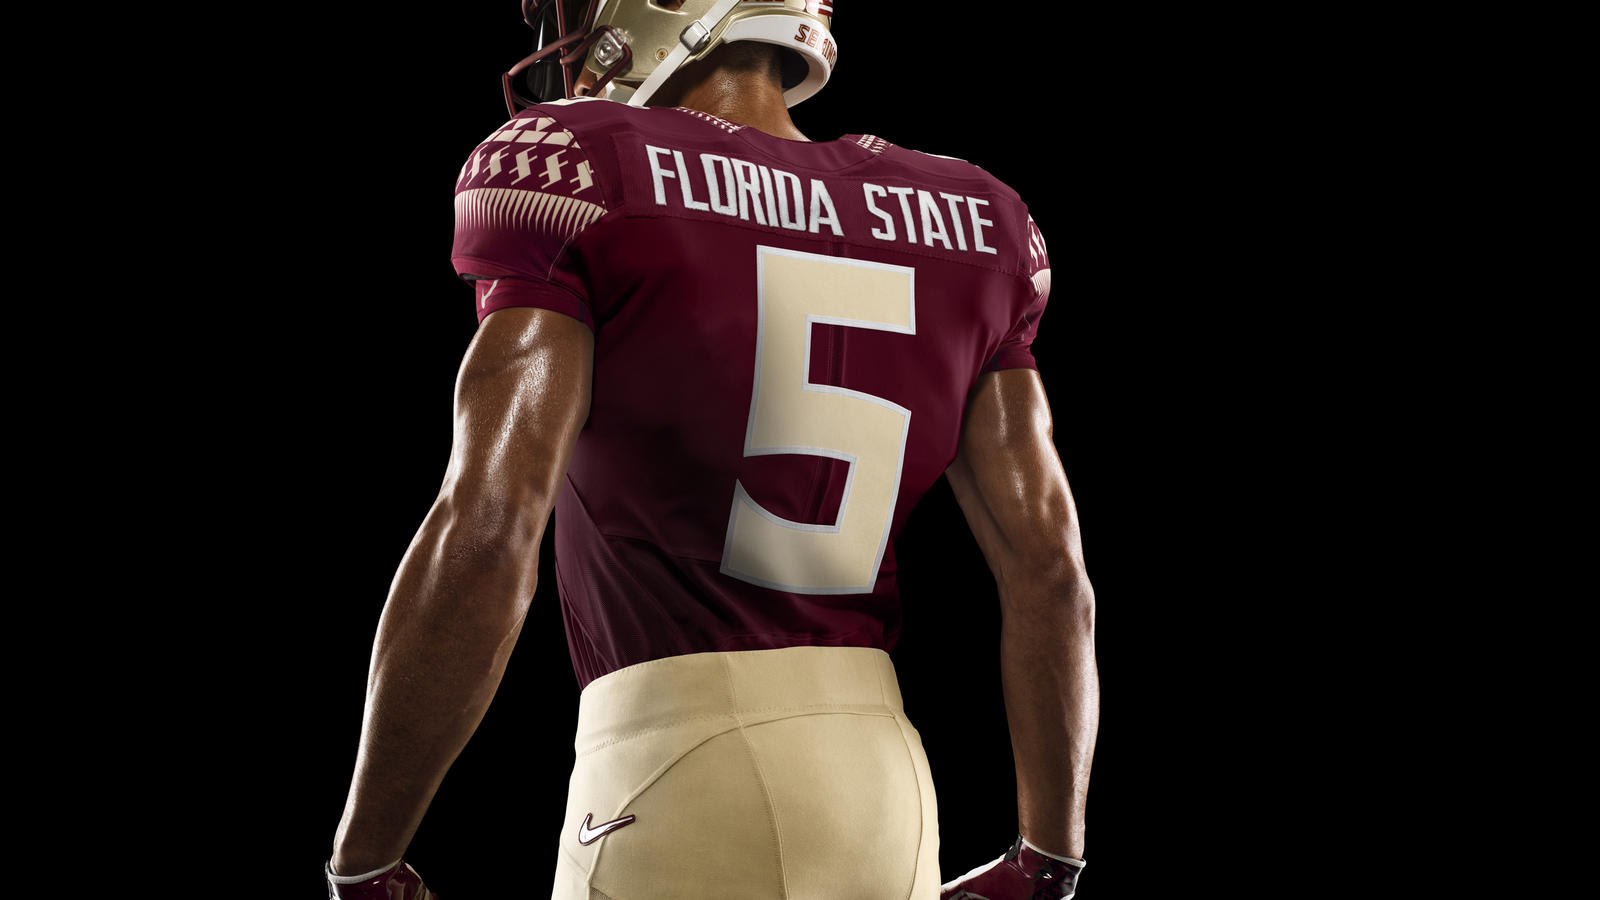 HO14_NFB_NCAA_Florida_Uniform_994